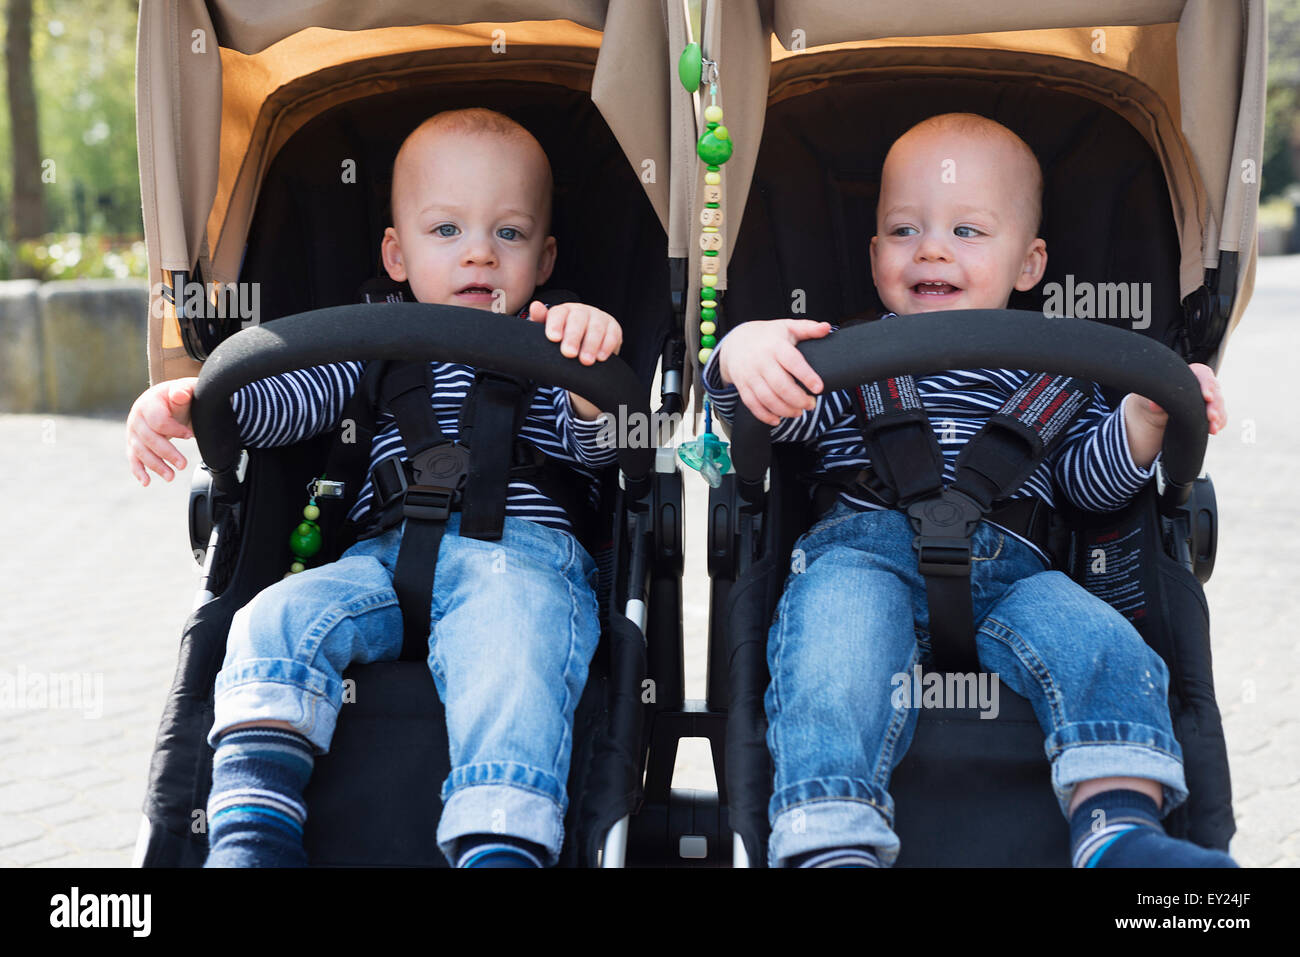 Portrait of baby twin brothers in pushchairs at park - Stock Image